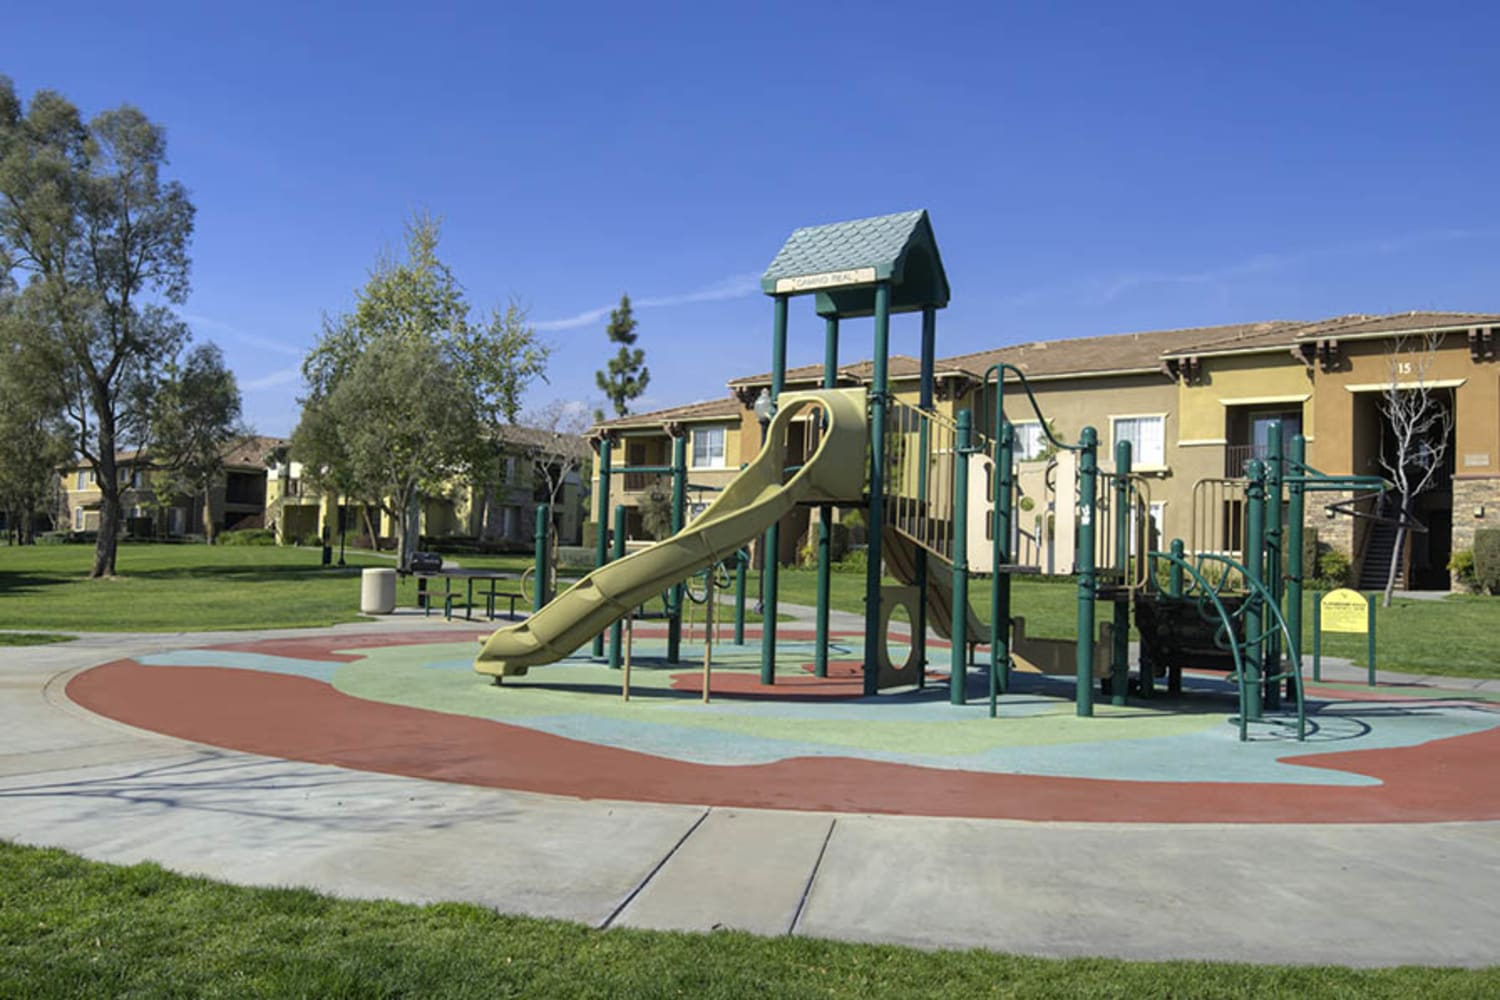 Playground at Camino Real in Rancho Cucamonga, California